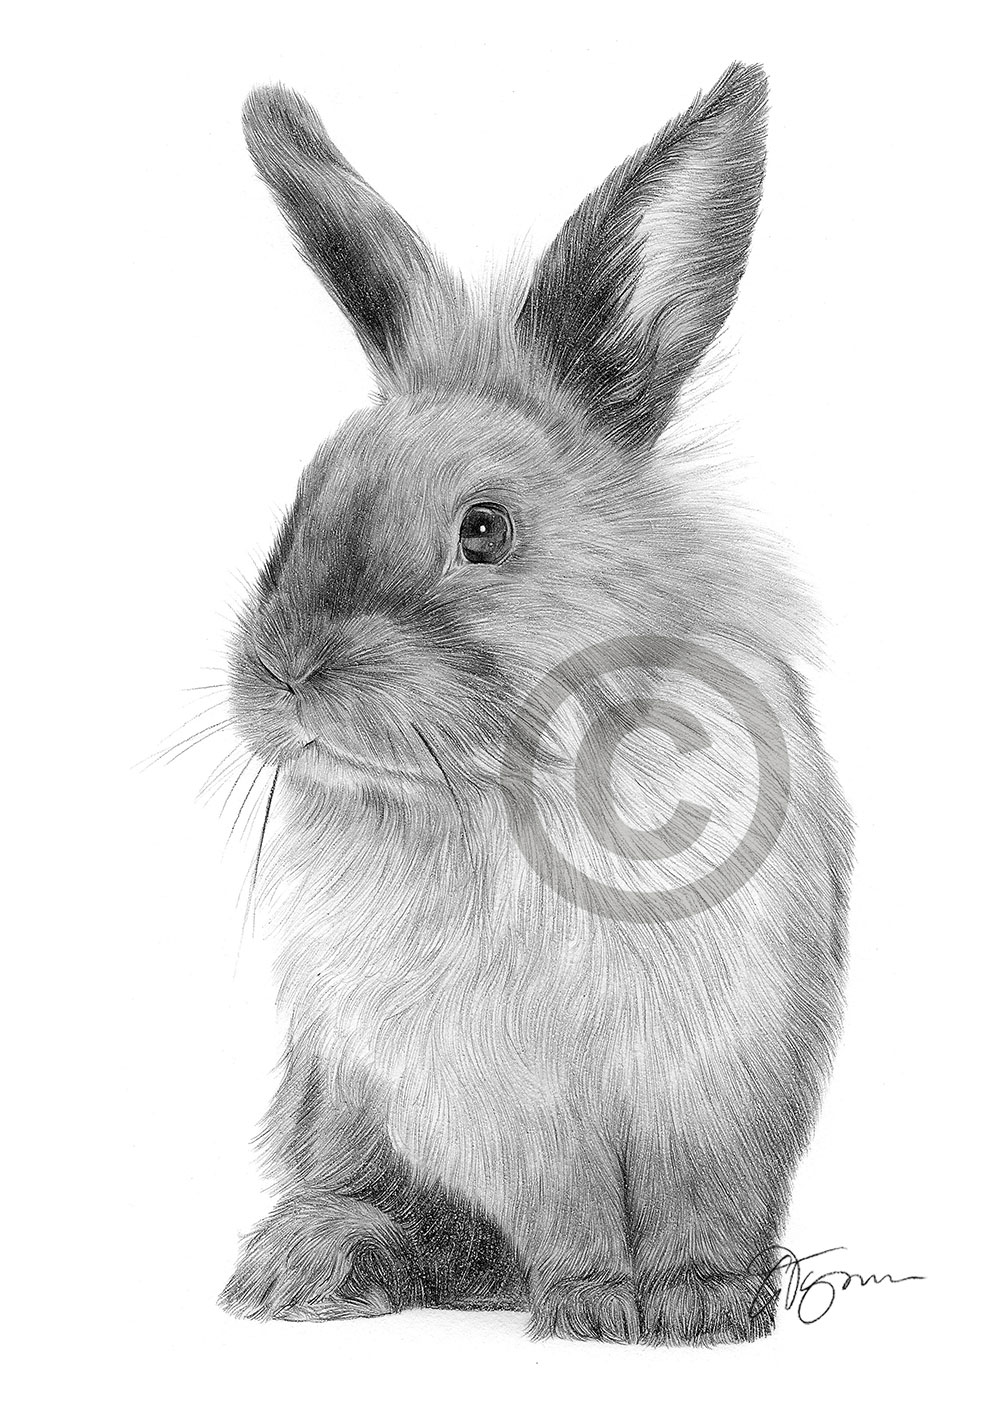 Pencil drawing of a rabbit by artist Gary Tymon